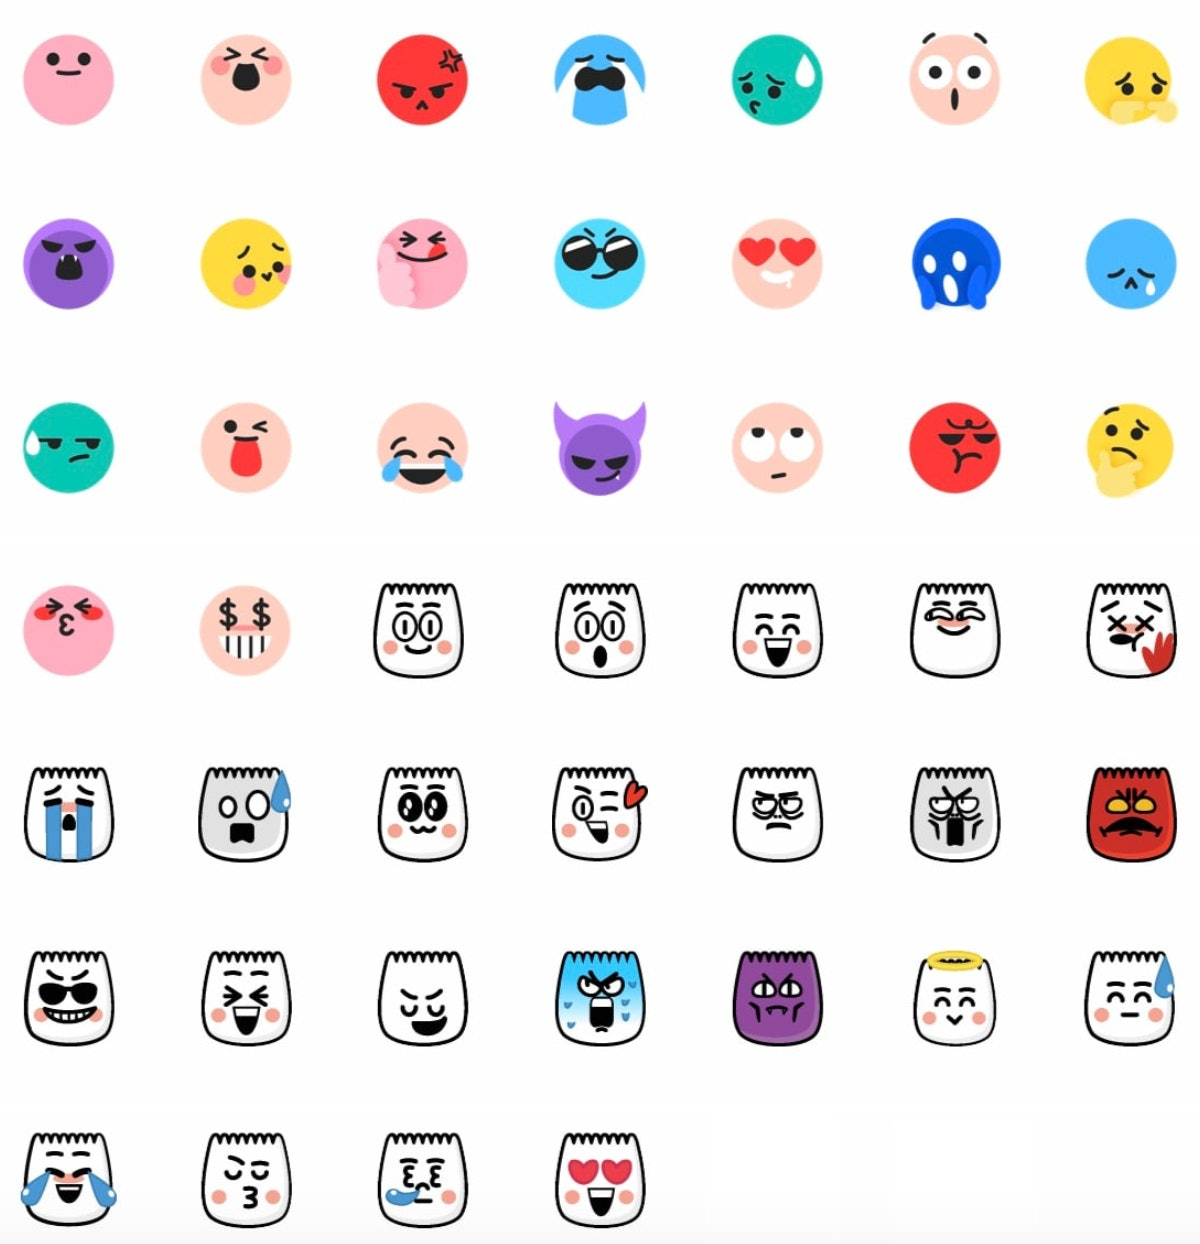 Wondering how to use TikTok emoji codes? It only takes a few steps.